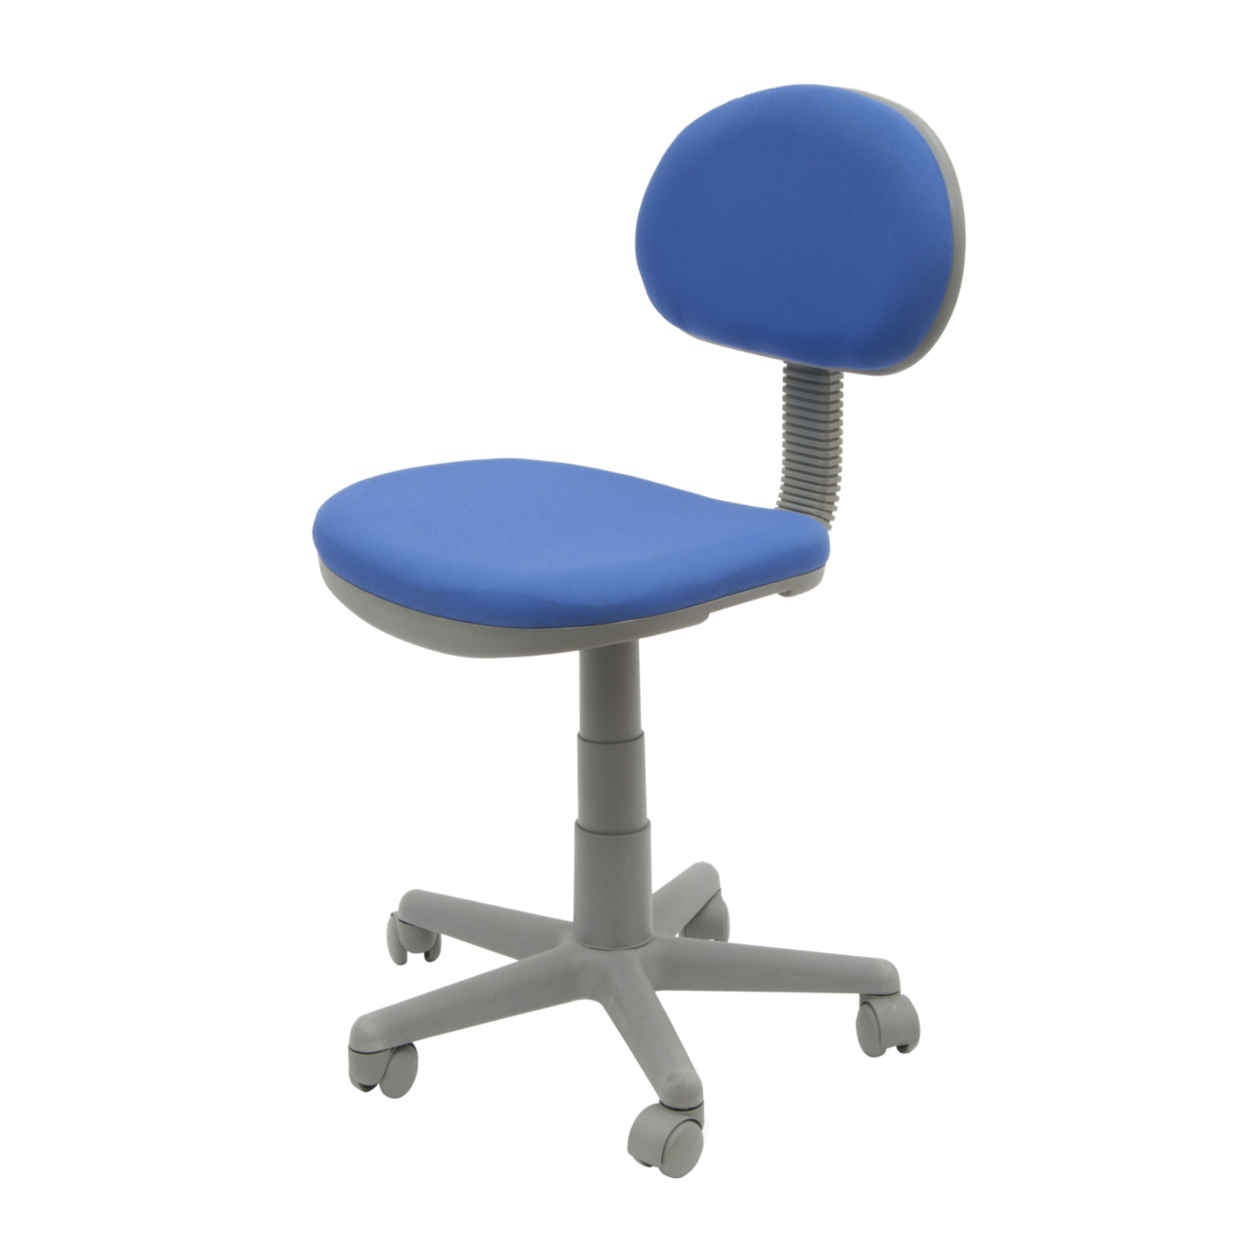 Studio Designs Home Office Deluxe Task Chair - Blue/Gray